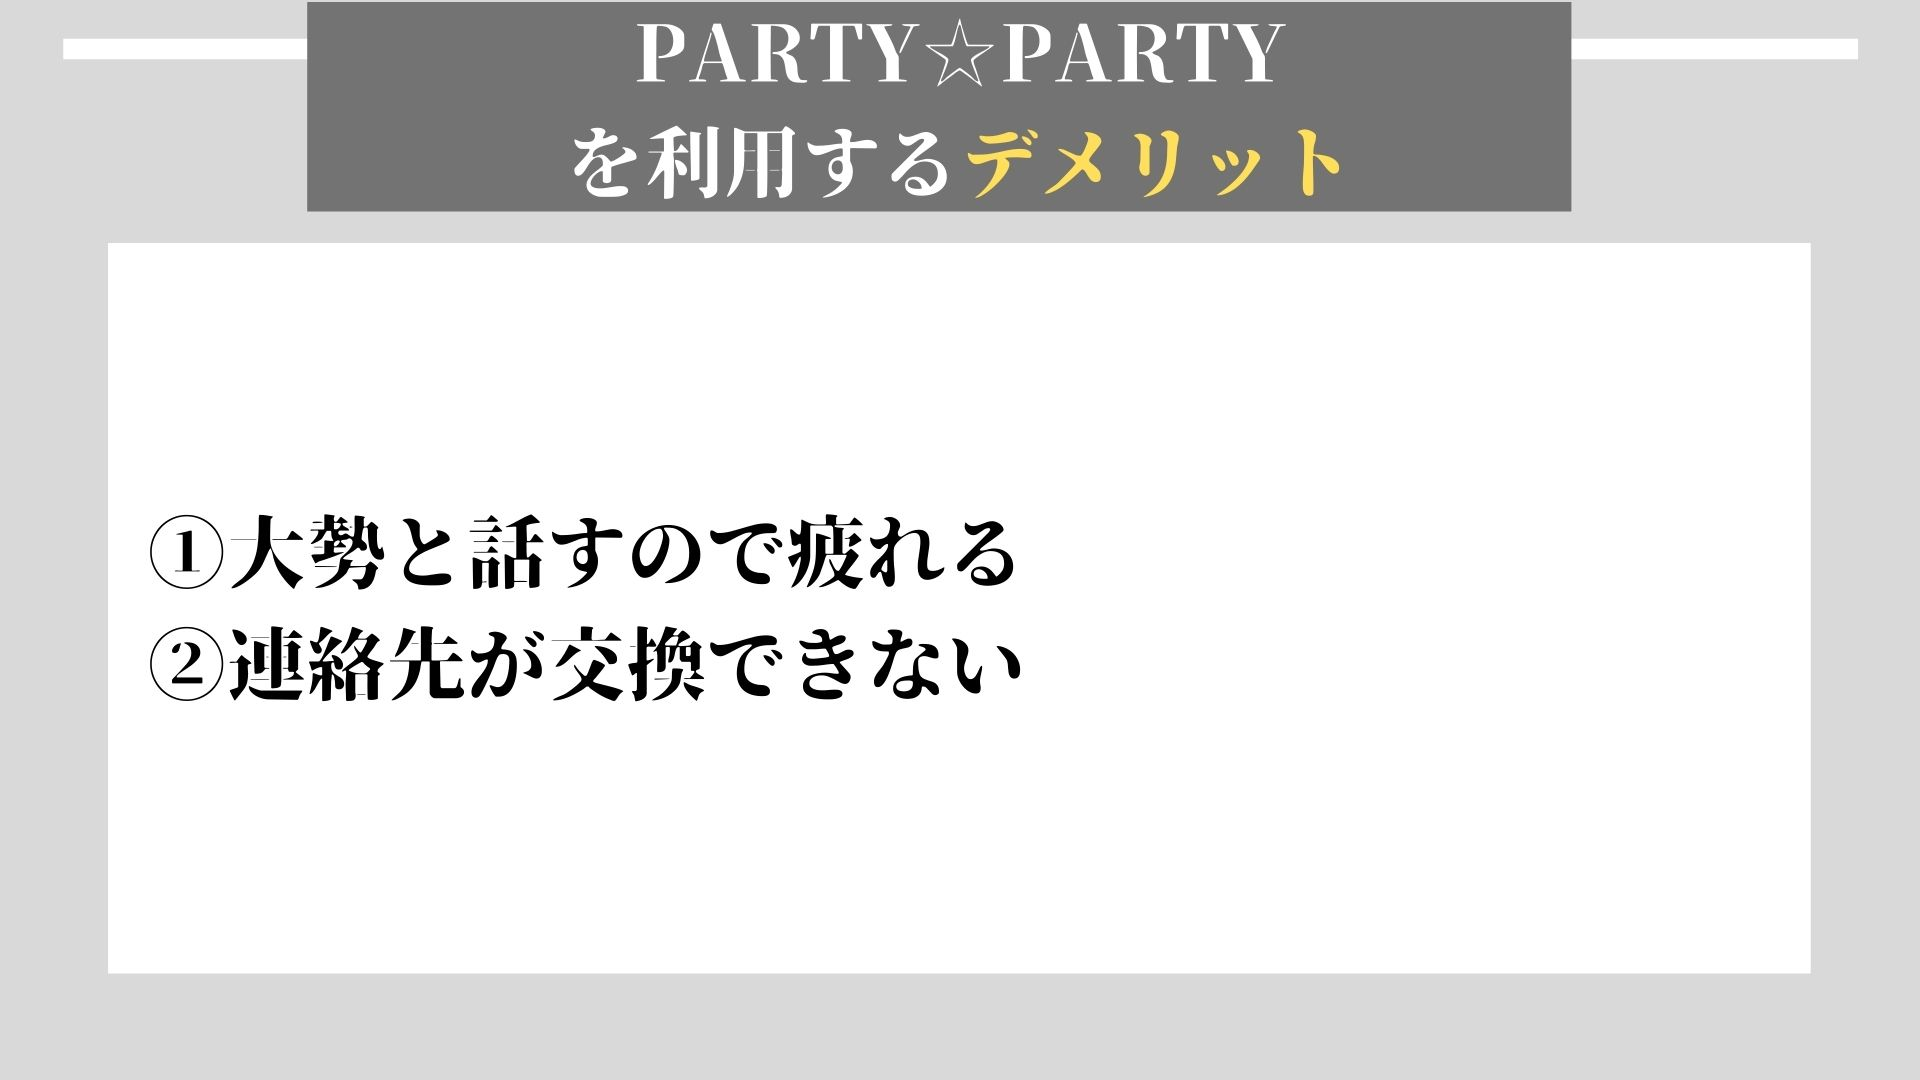 PARTY☆PARTY デメリット